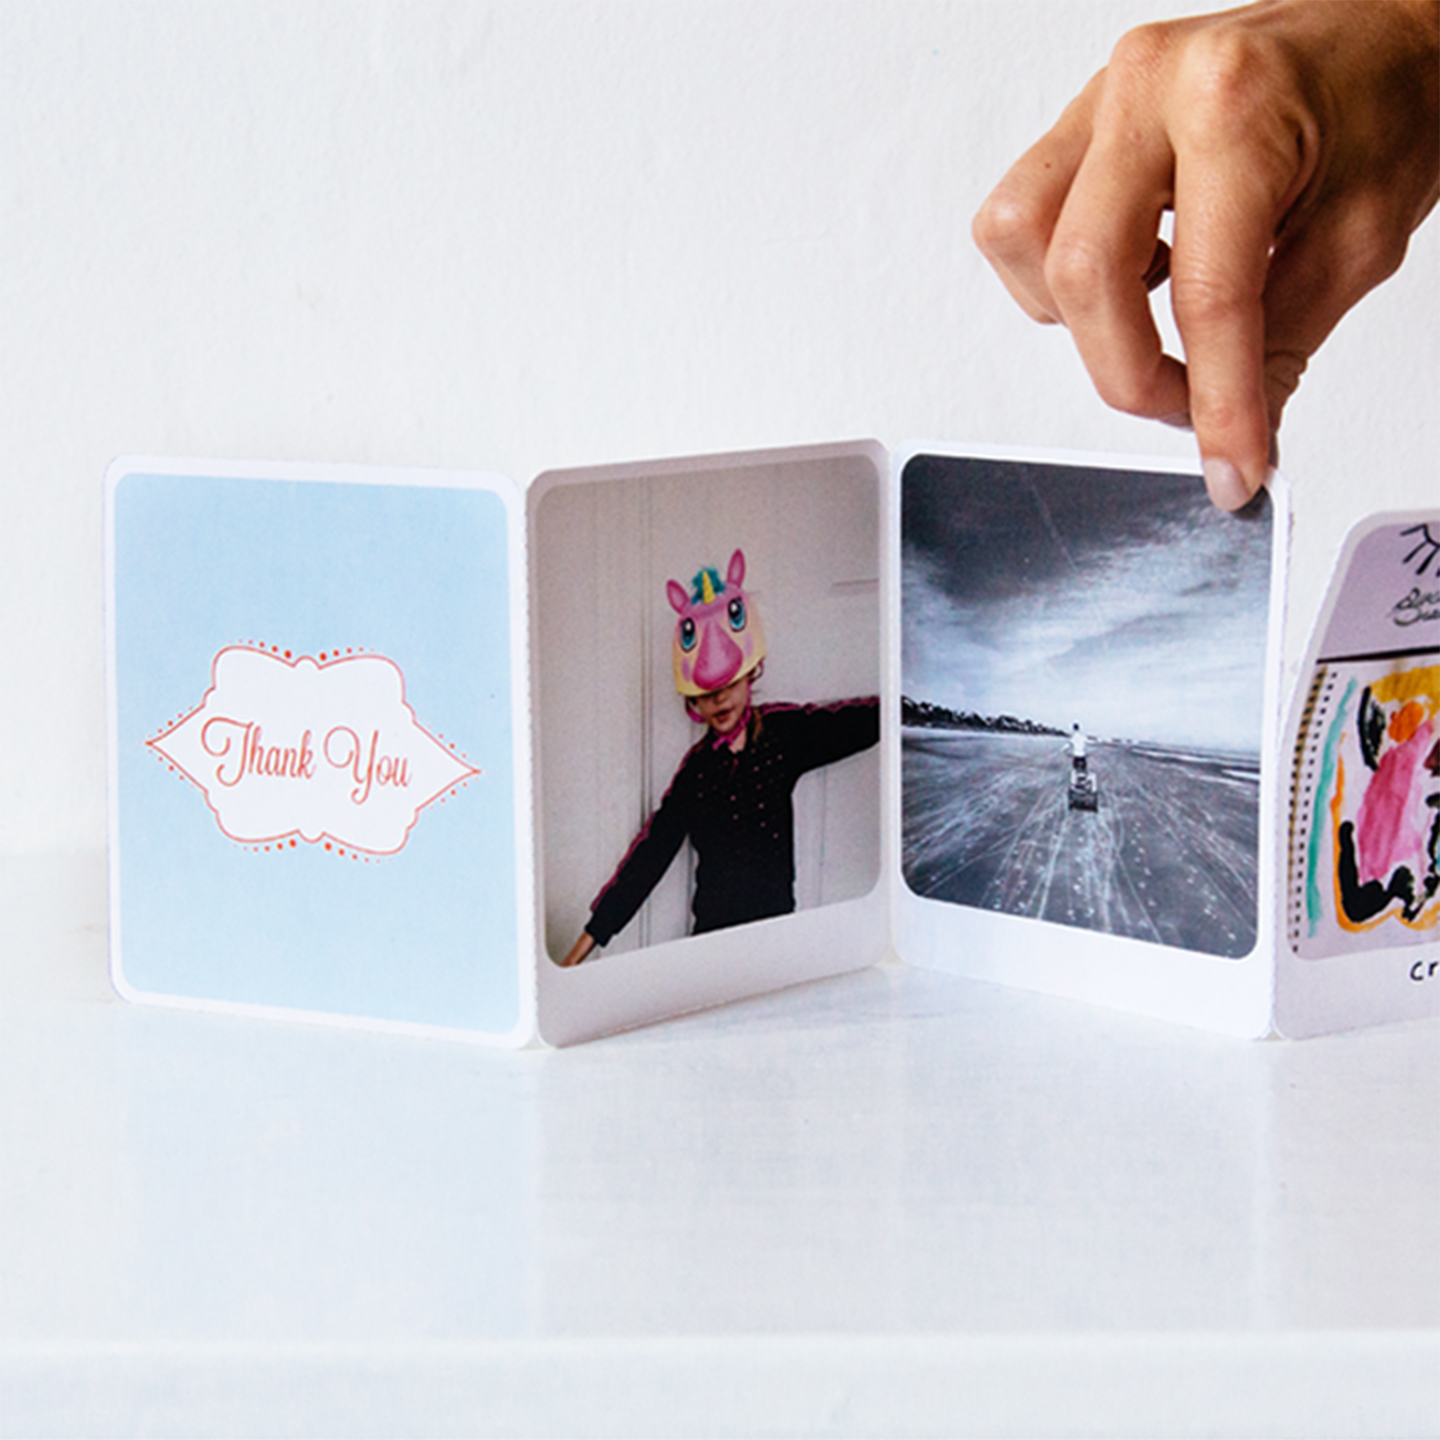 Felt App Handwritten Cards For The Modern World